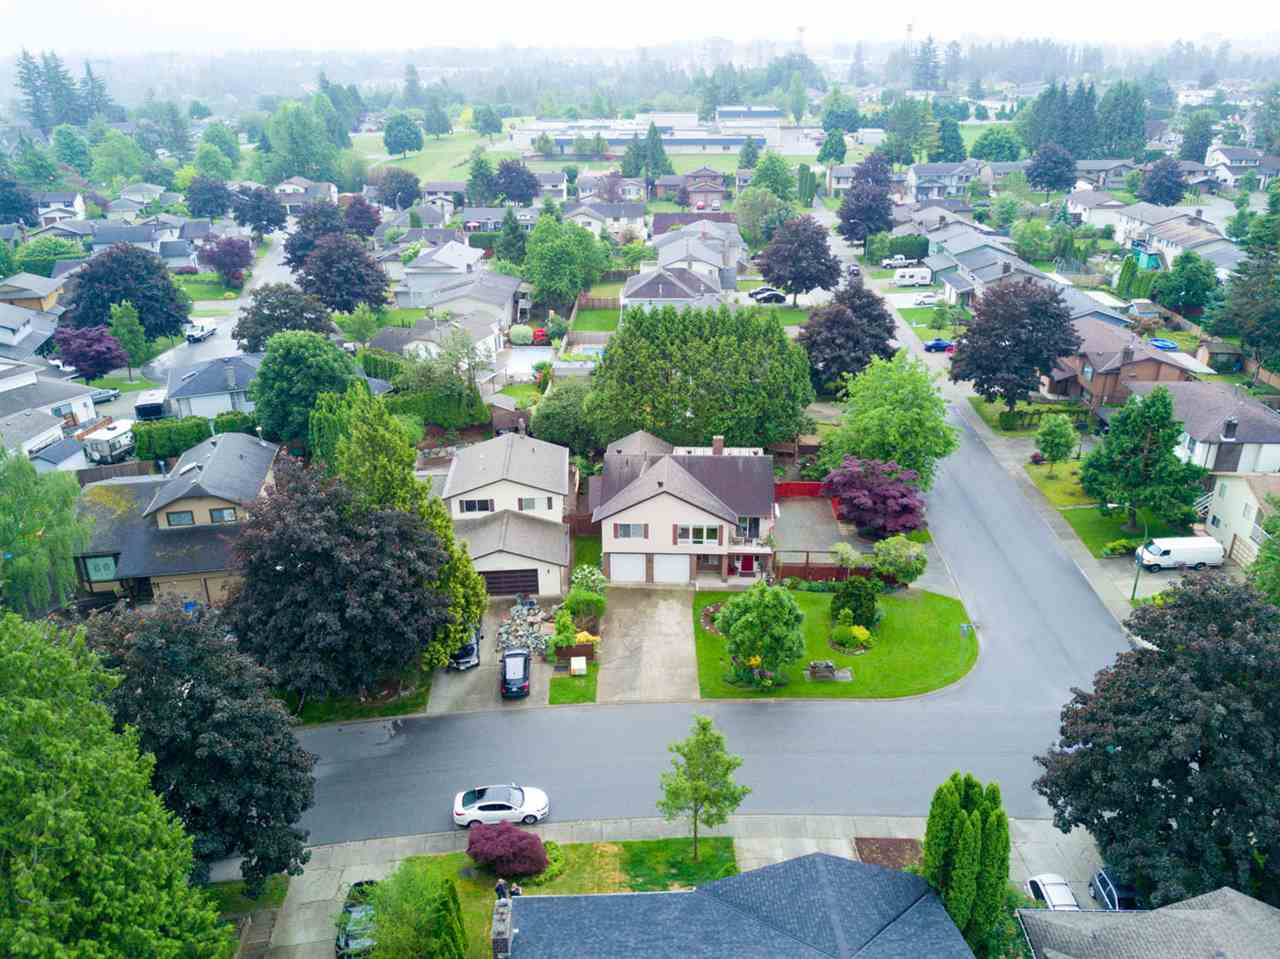 Main Photo: 3702 HARWOOD Crescent in Abbotsford: Central Abbotsford House for sale : MLS®# R2174121